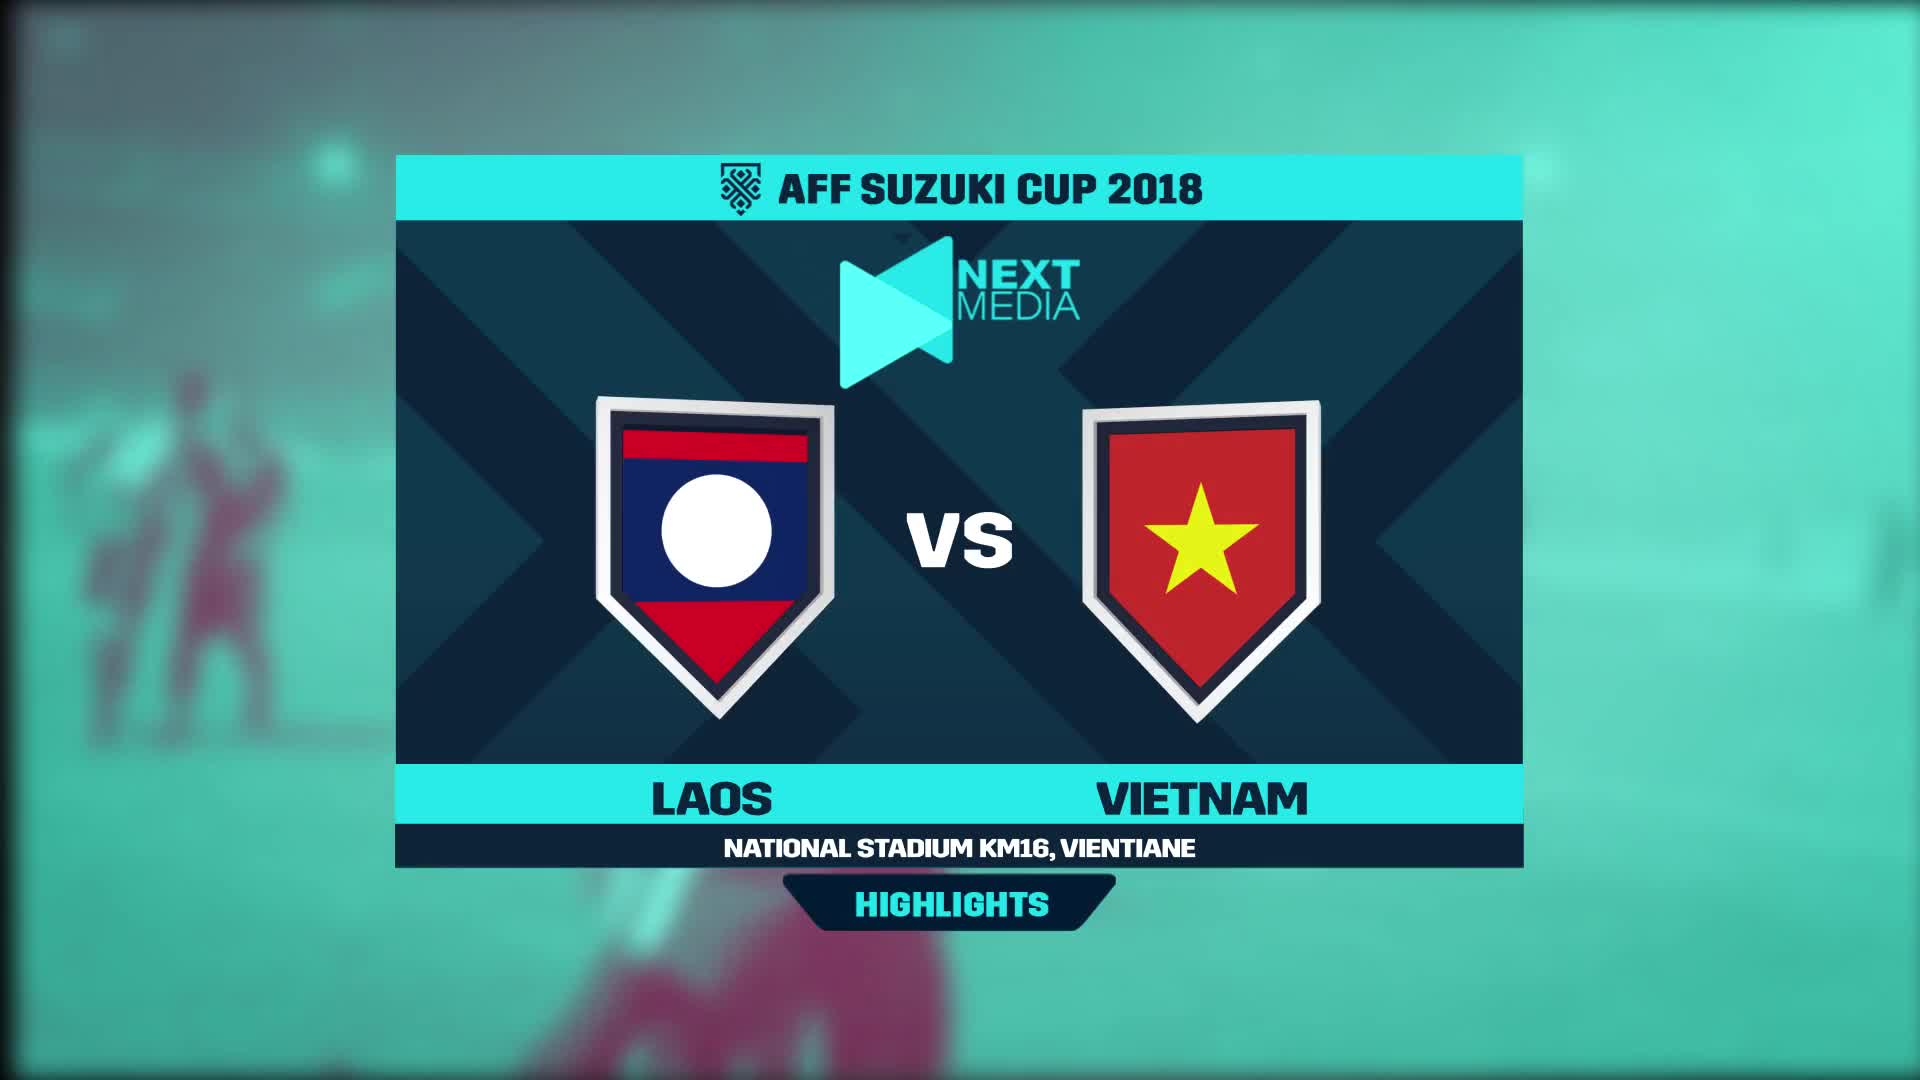 Bán kết AFF Cup 2016: Việt Nam 2-2 Indonesia